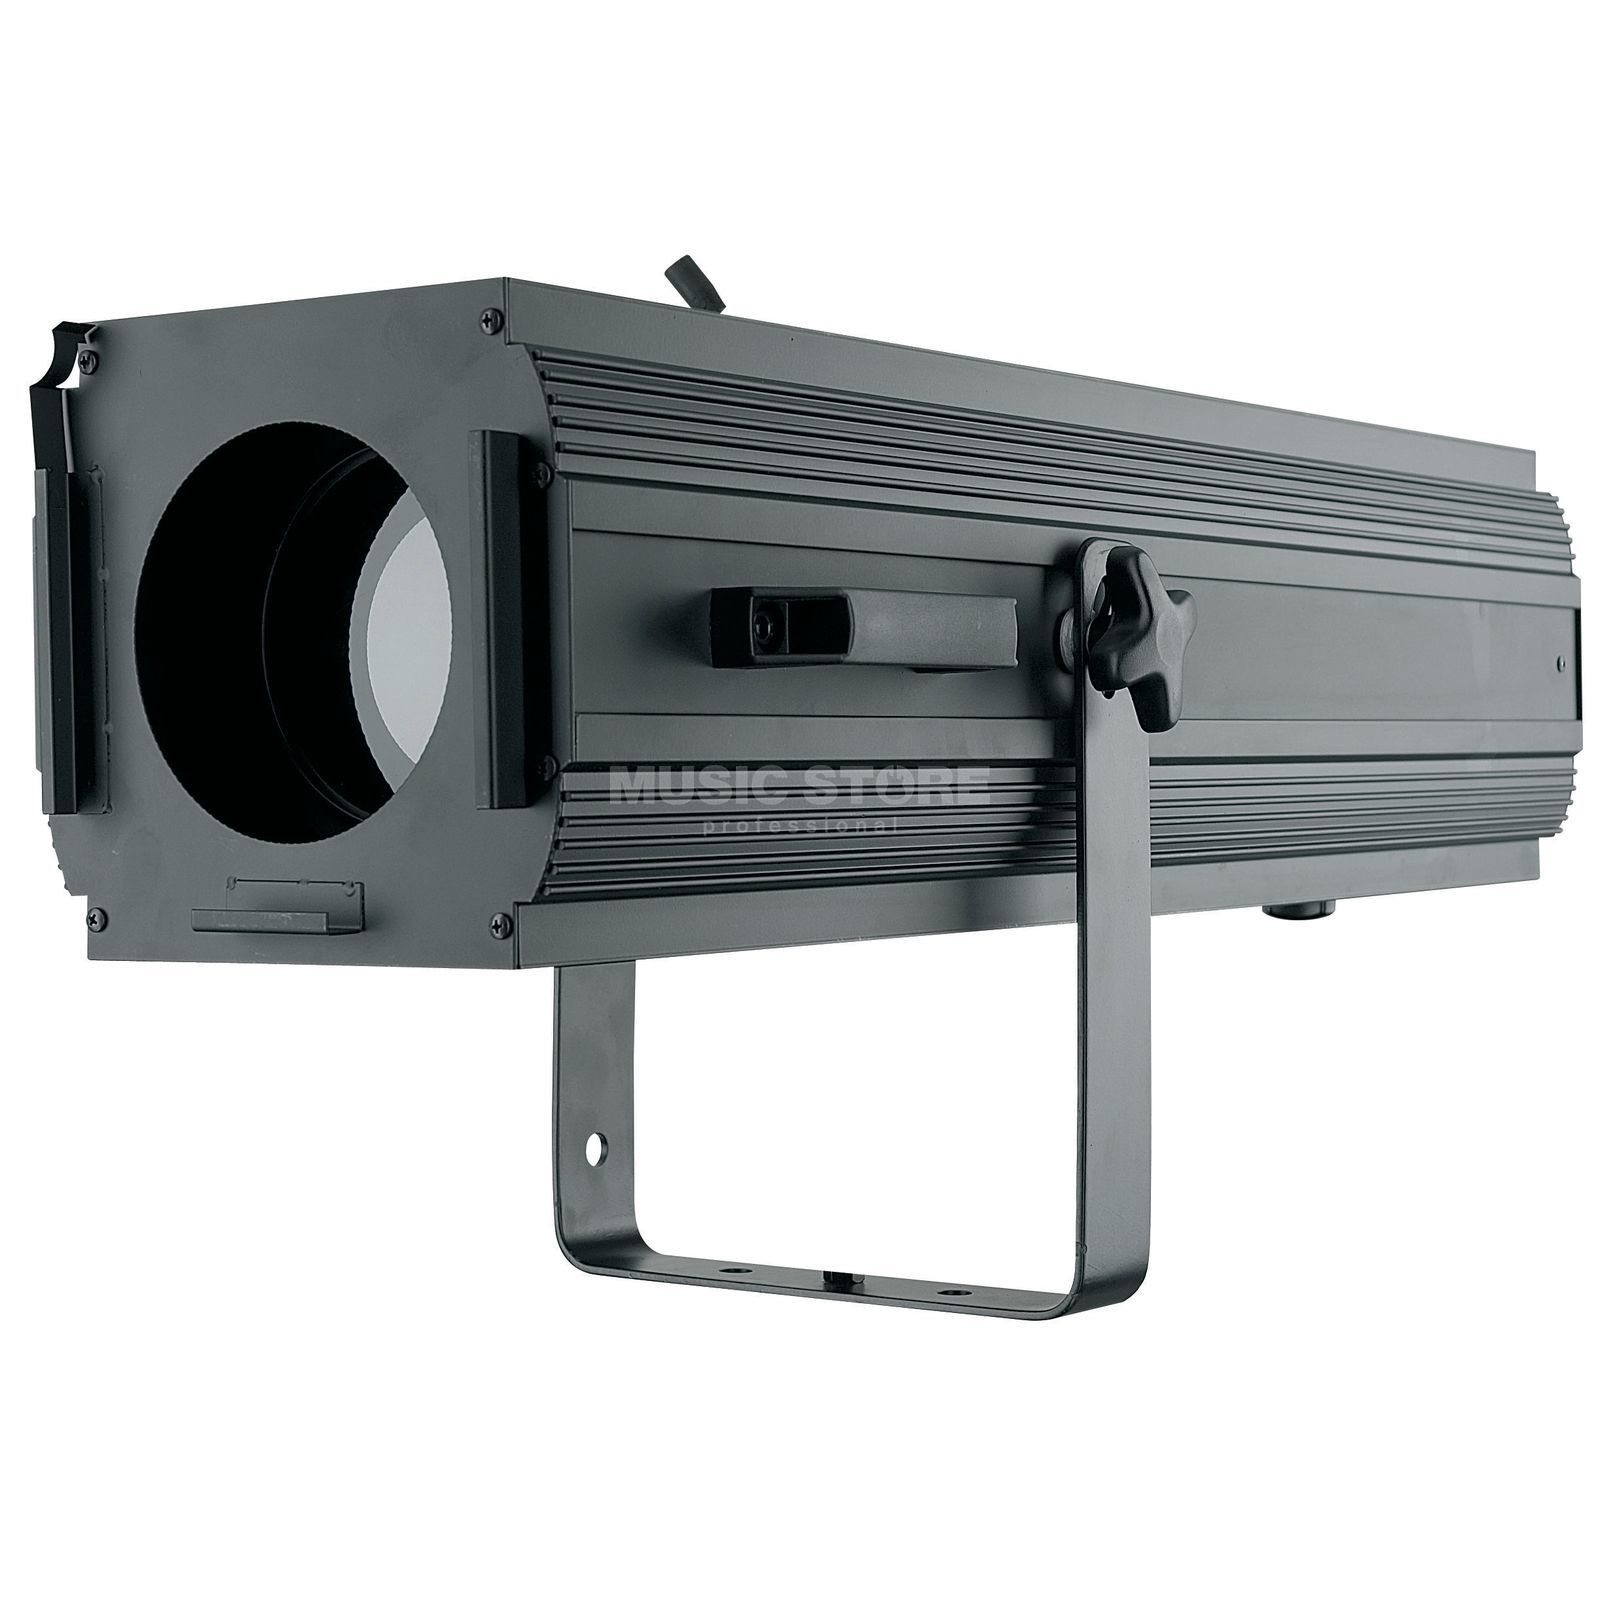 Showtec Followspot 1000 W, GX 9,5   Produktbillede